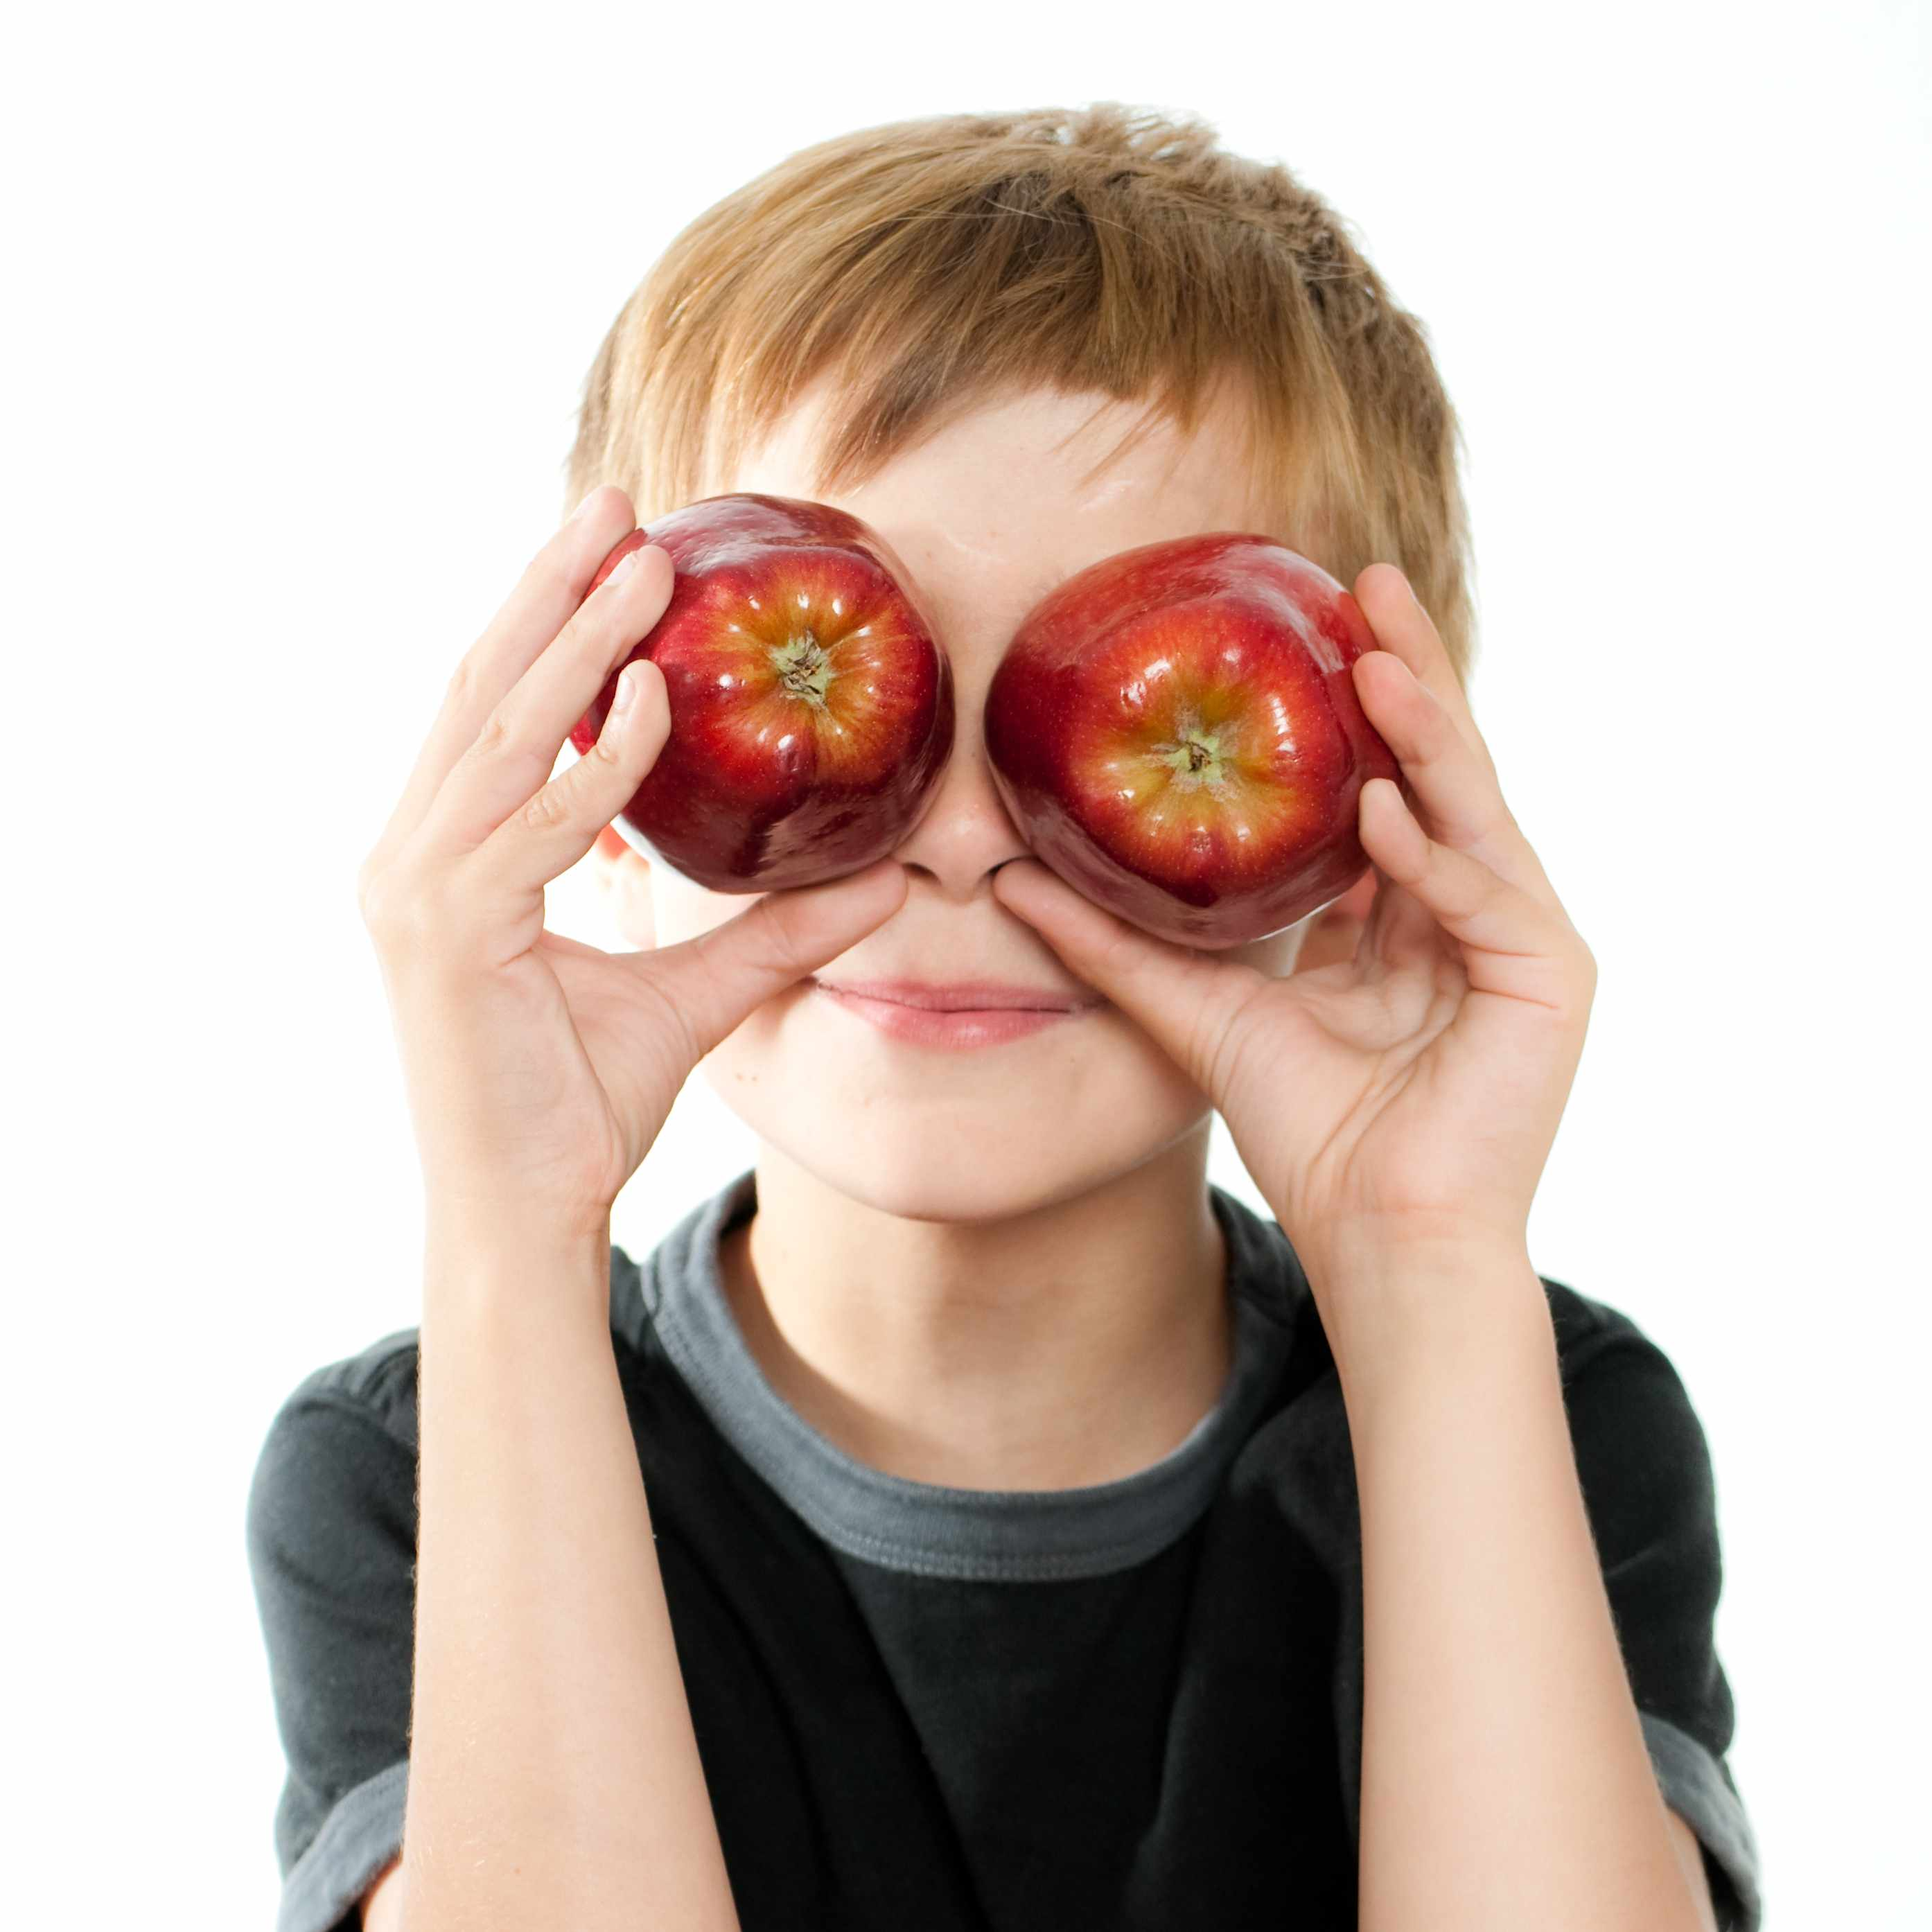 a young boy holding two red apples up in front of his eyes